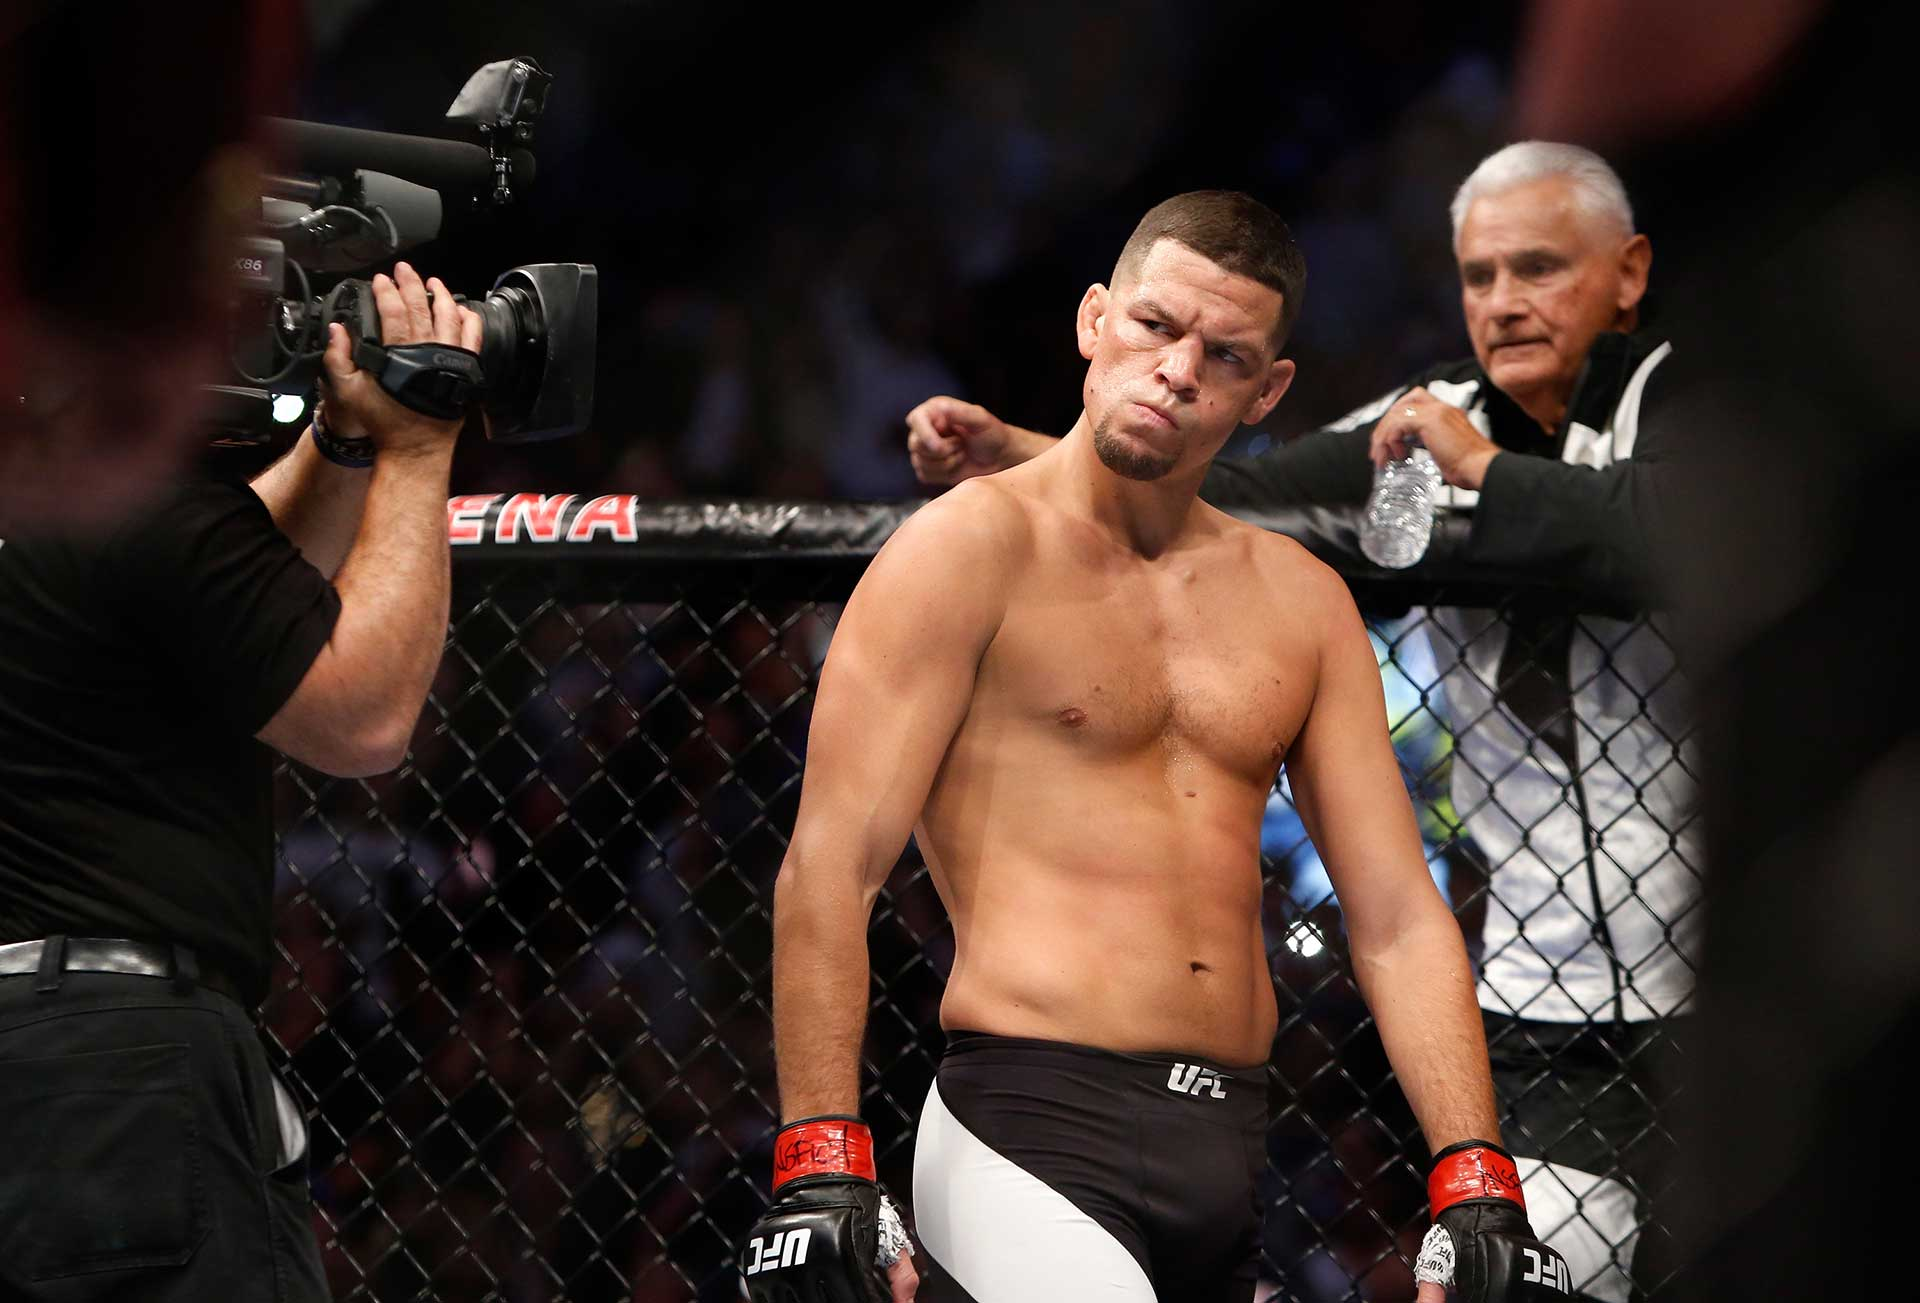 Nate Diaz eyes Conor McGregor from across the Octagon before their welterweight rematch at the UFC 202 event at T-Mobile Arena on August 20, 2016 in Las Vegas, Nevada. McGregor won by majority decision. (Photo by Steve Marcus/Getty Images)